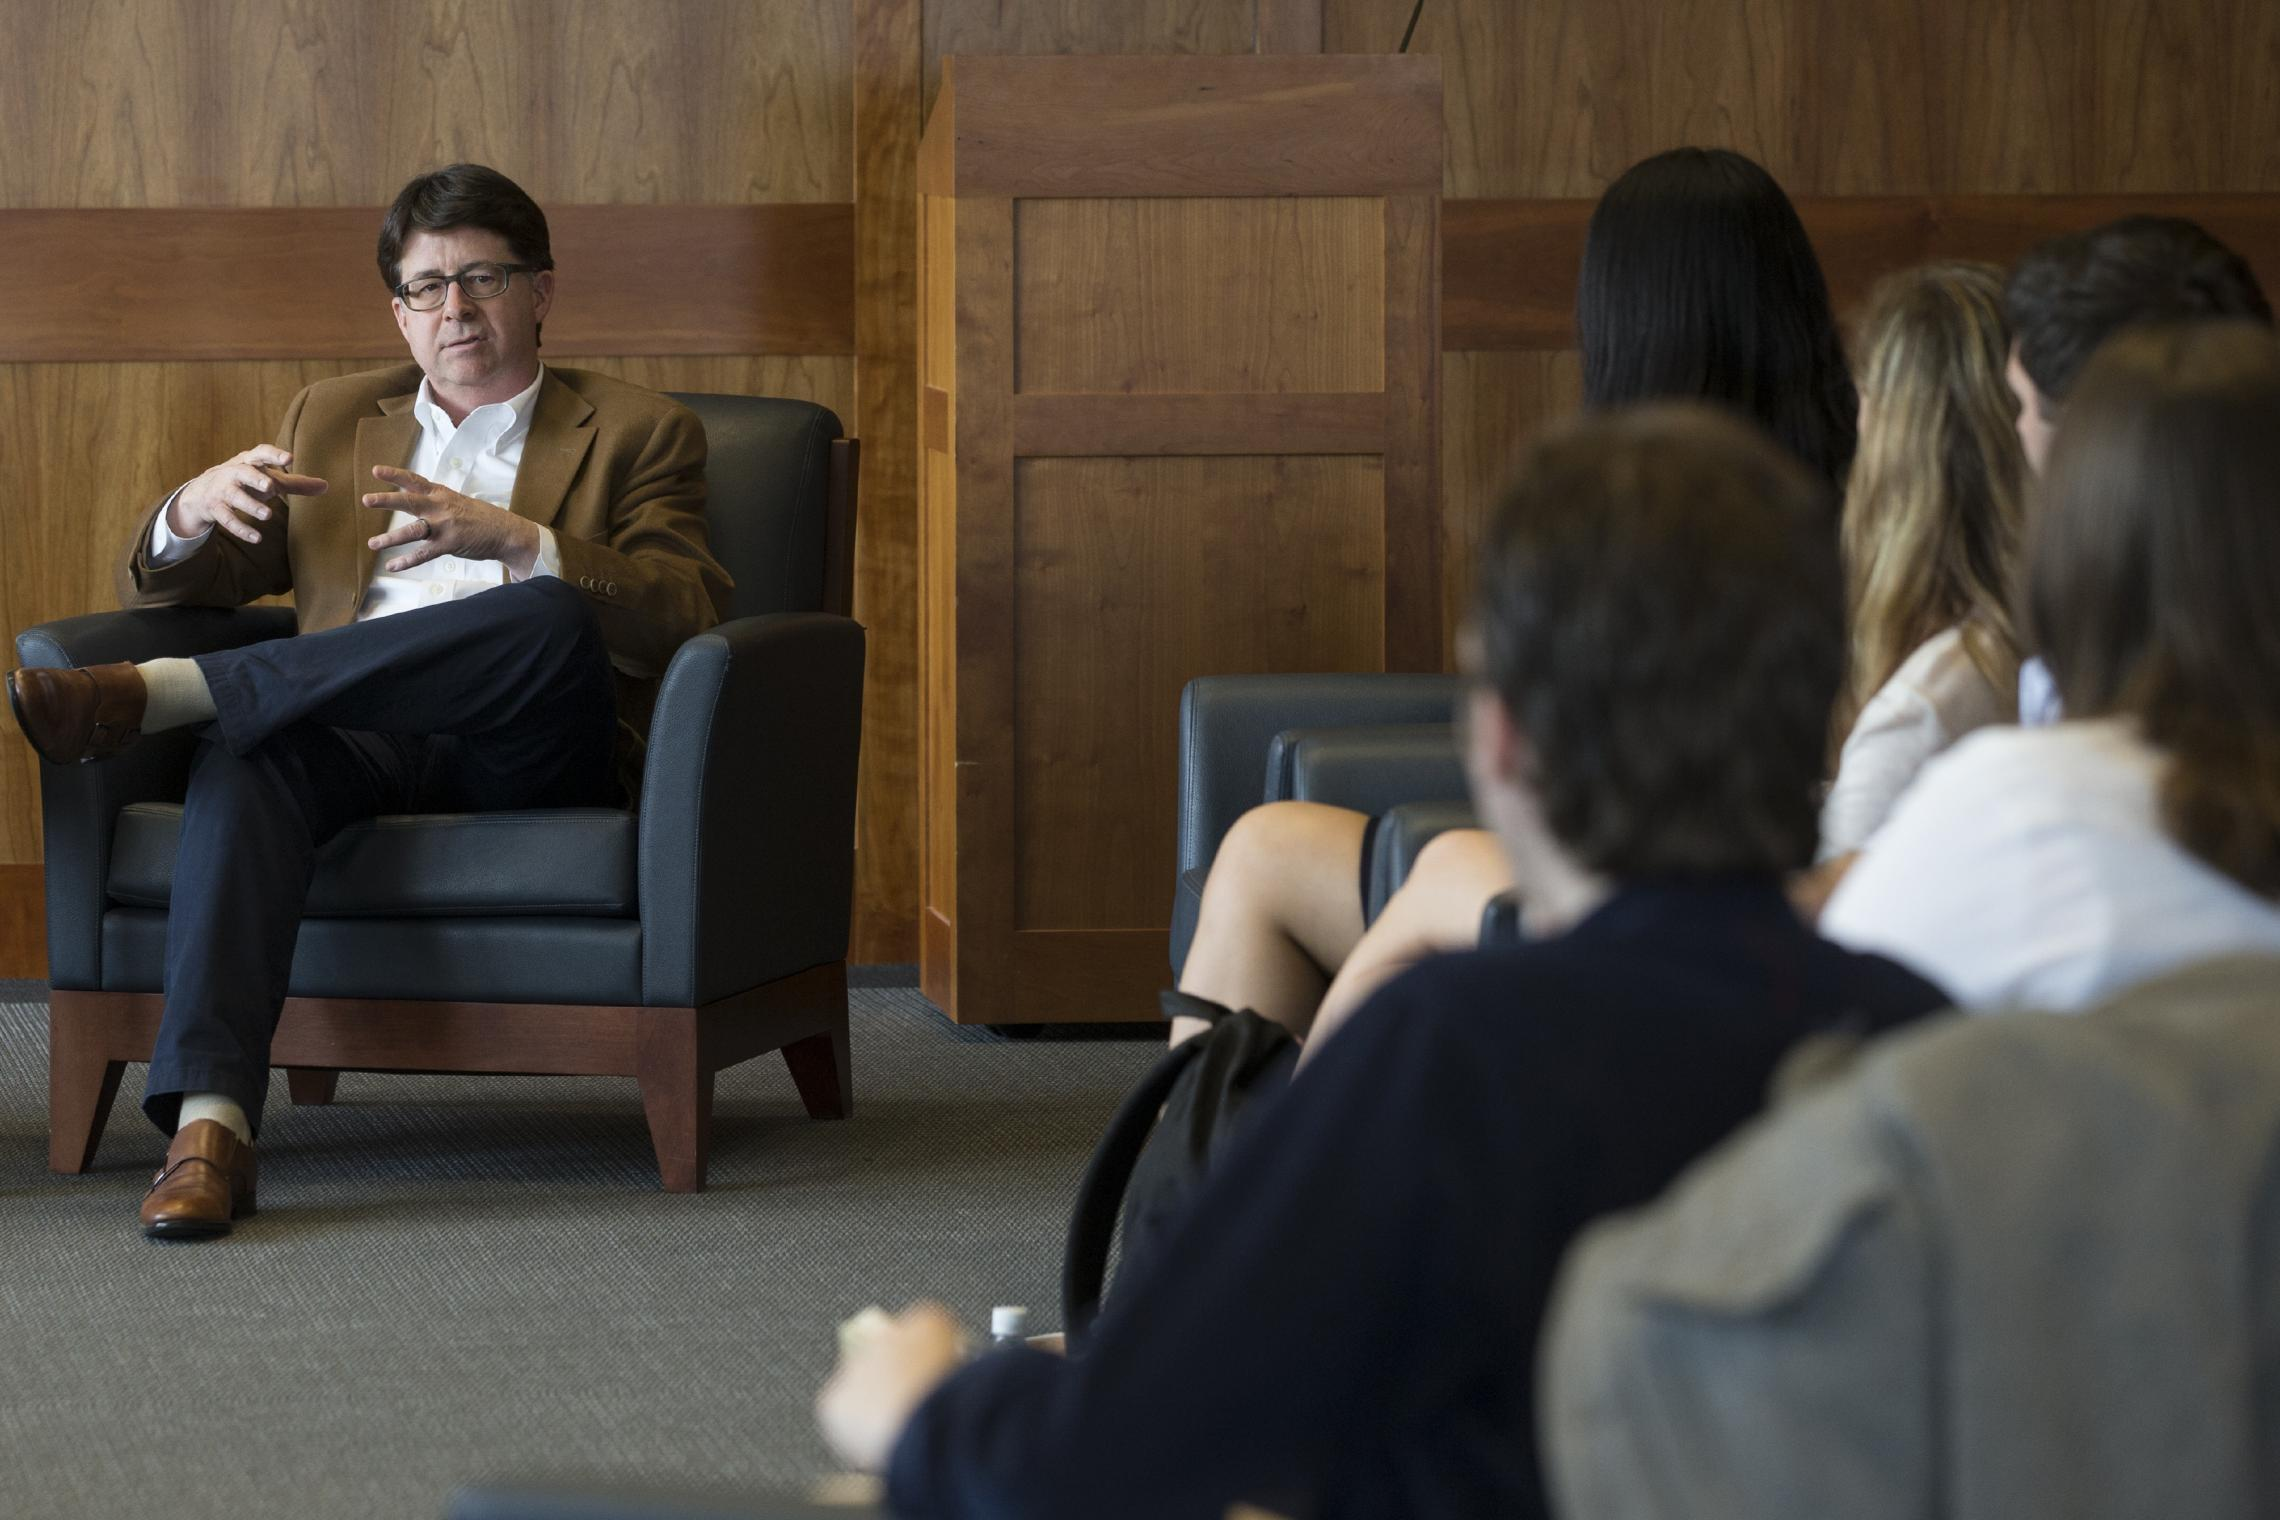 UVA Law graduate Dean Strang spoke at the Law School in March. (Photo by Dan Addison, University Communications)